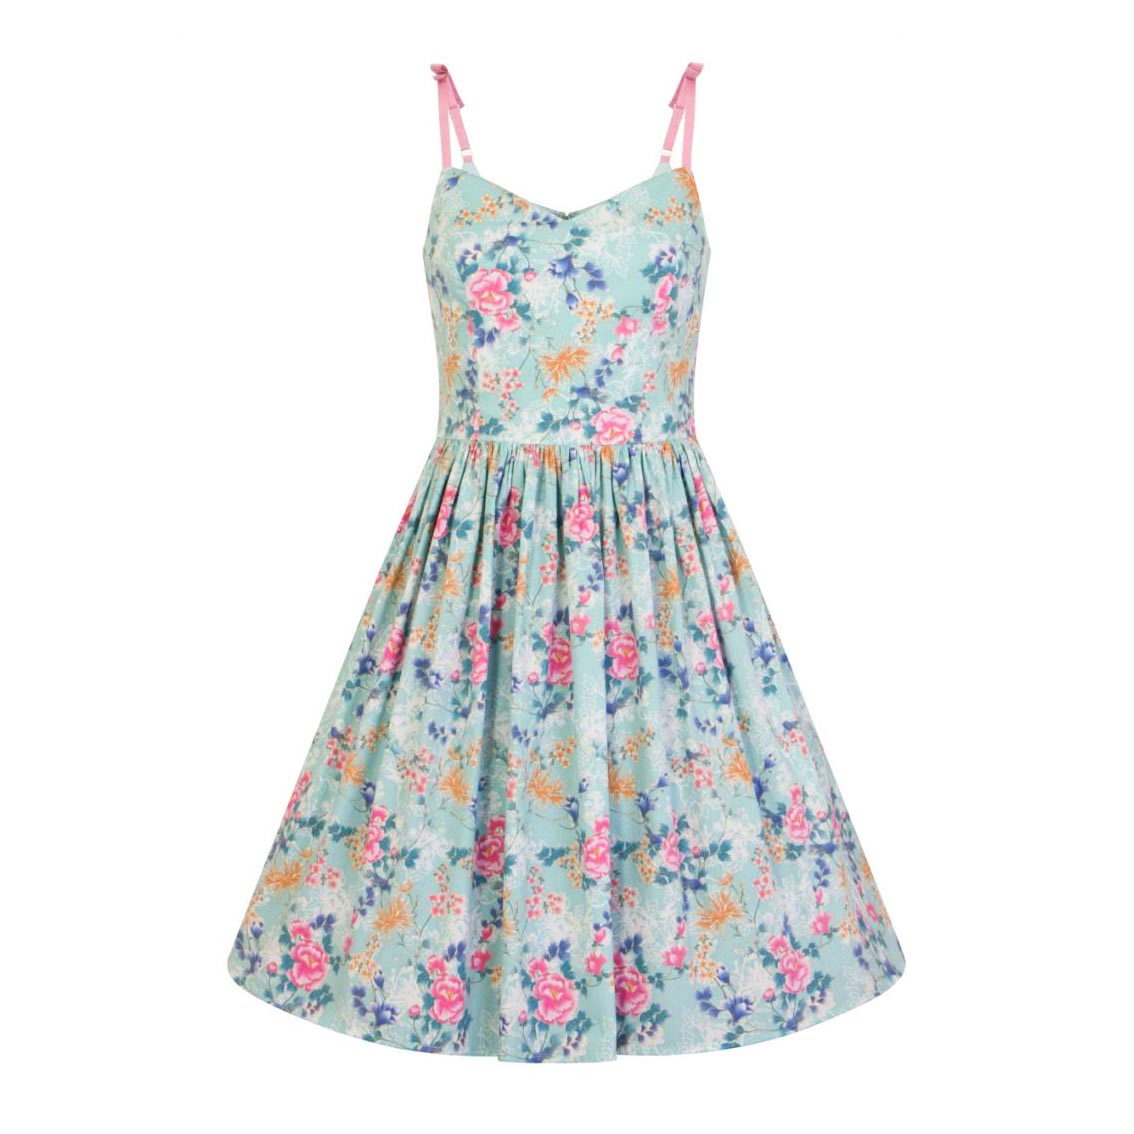 Hell-Bunny-50s-Mid-Length-Dress-Vintage-Blue-Pink-SAKURA-Flowers-Roses-All-Sizes thumbnail 13